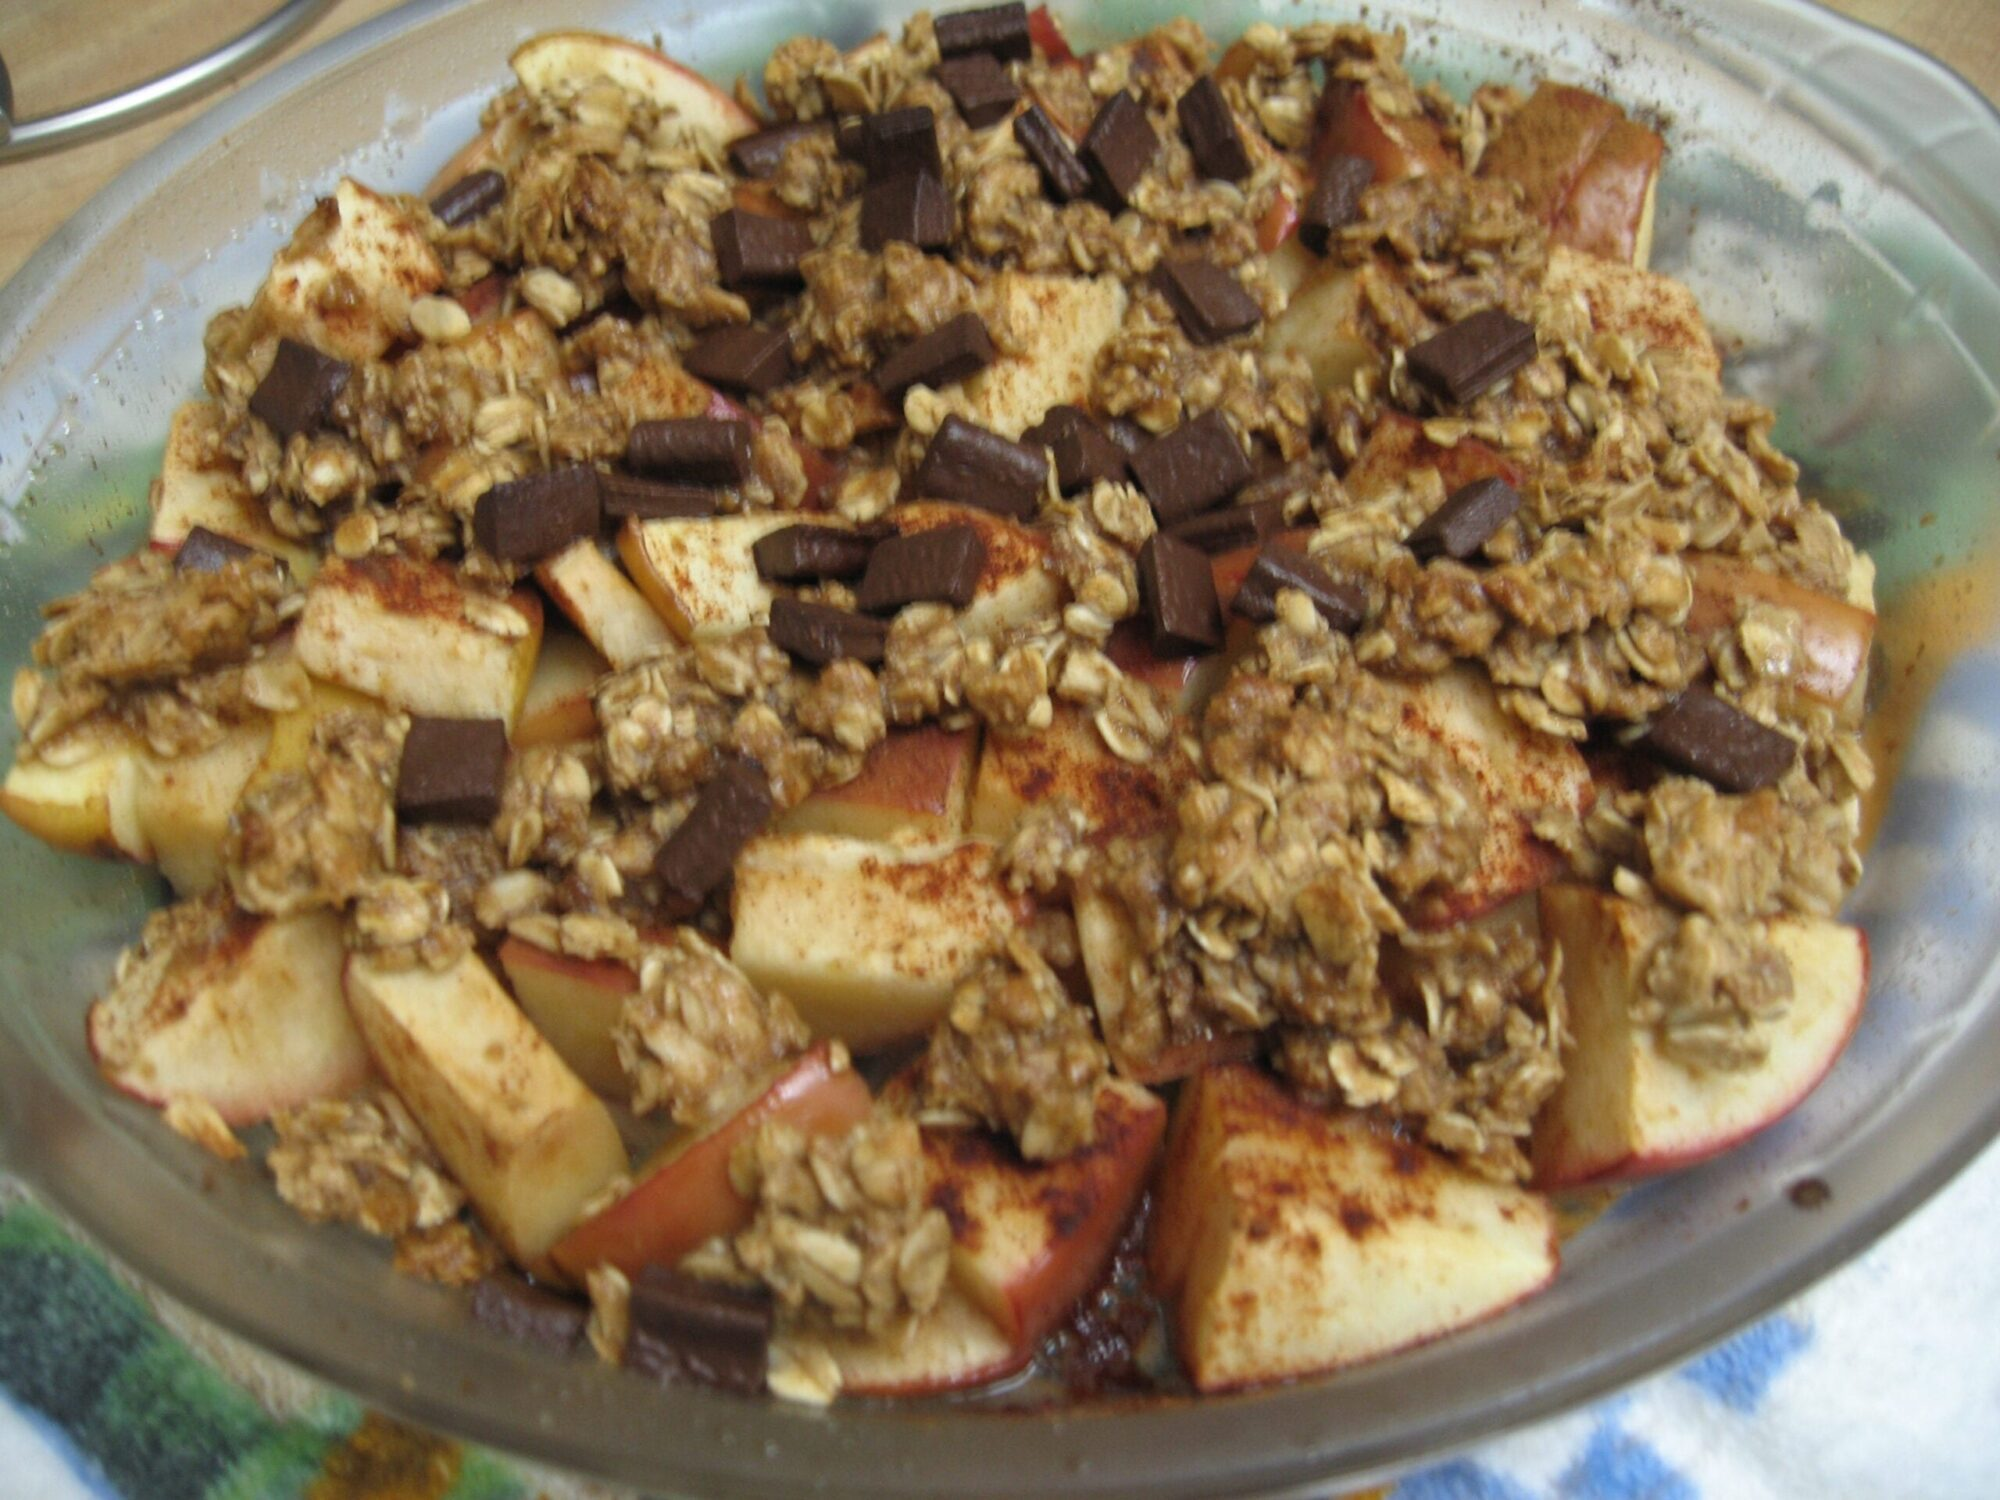 Warm Dessert - Apple Crisp